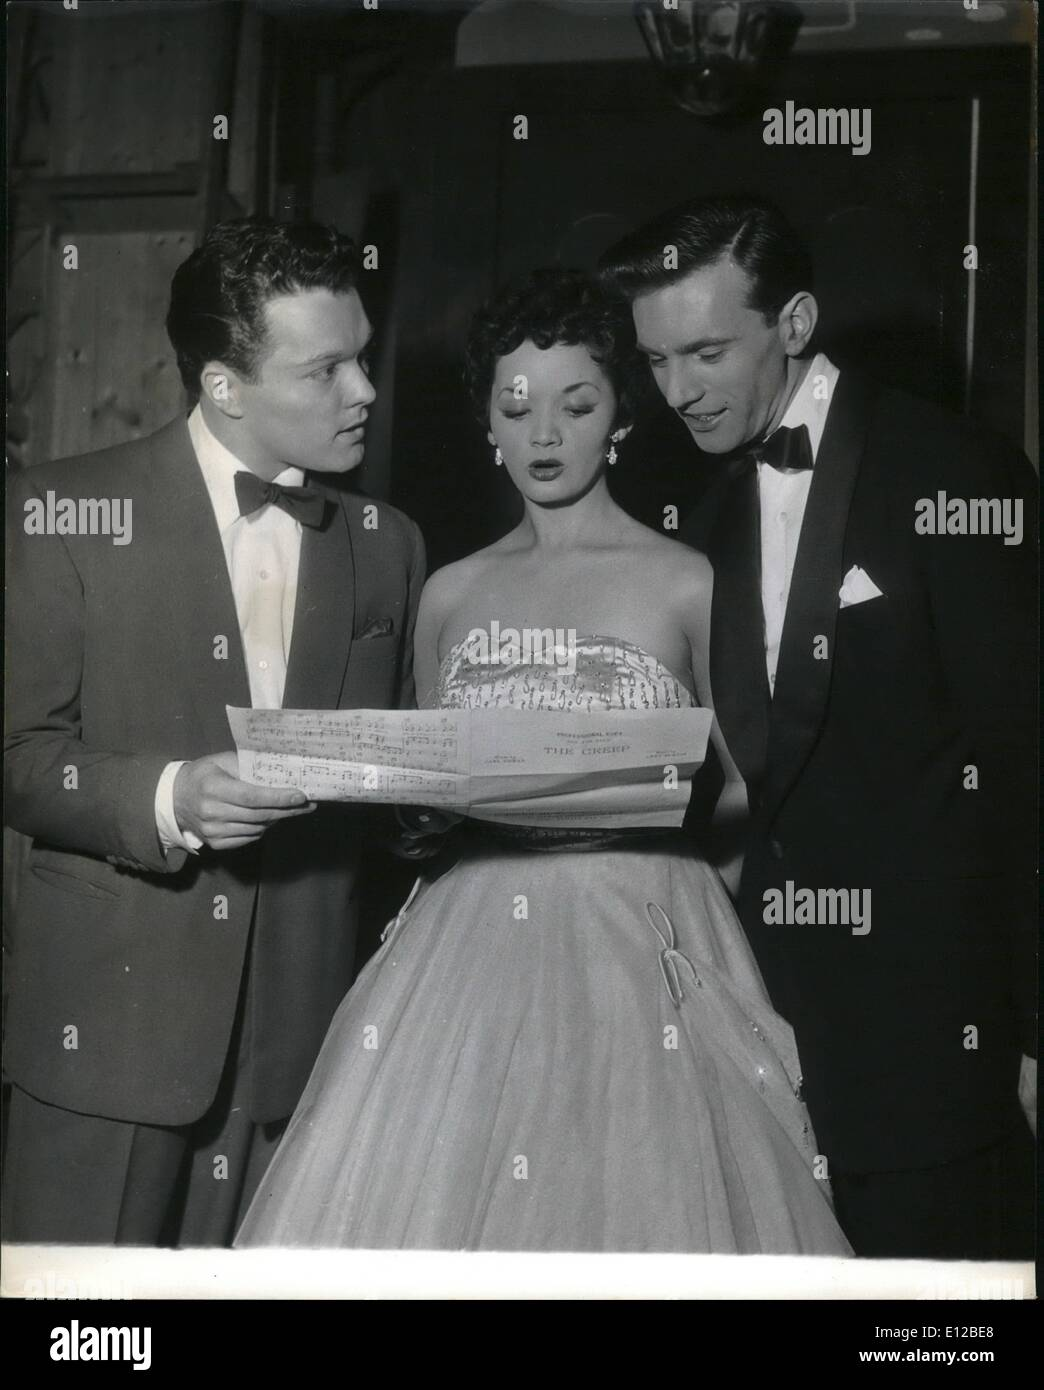 Dec. 09, 2011 - Before the 10th performance of the heath's sting sessions at the palladium vocalist lats Rosa checks a script with singer Dickie valentine (left) and Dennis lotion, another singer. - Stock Image